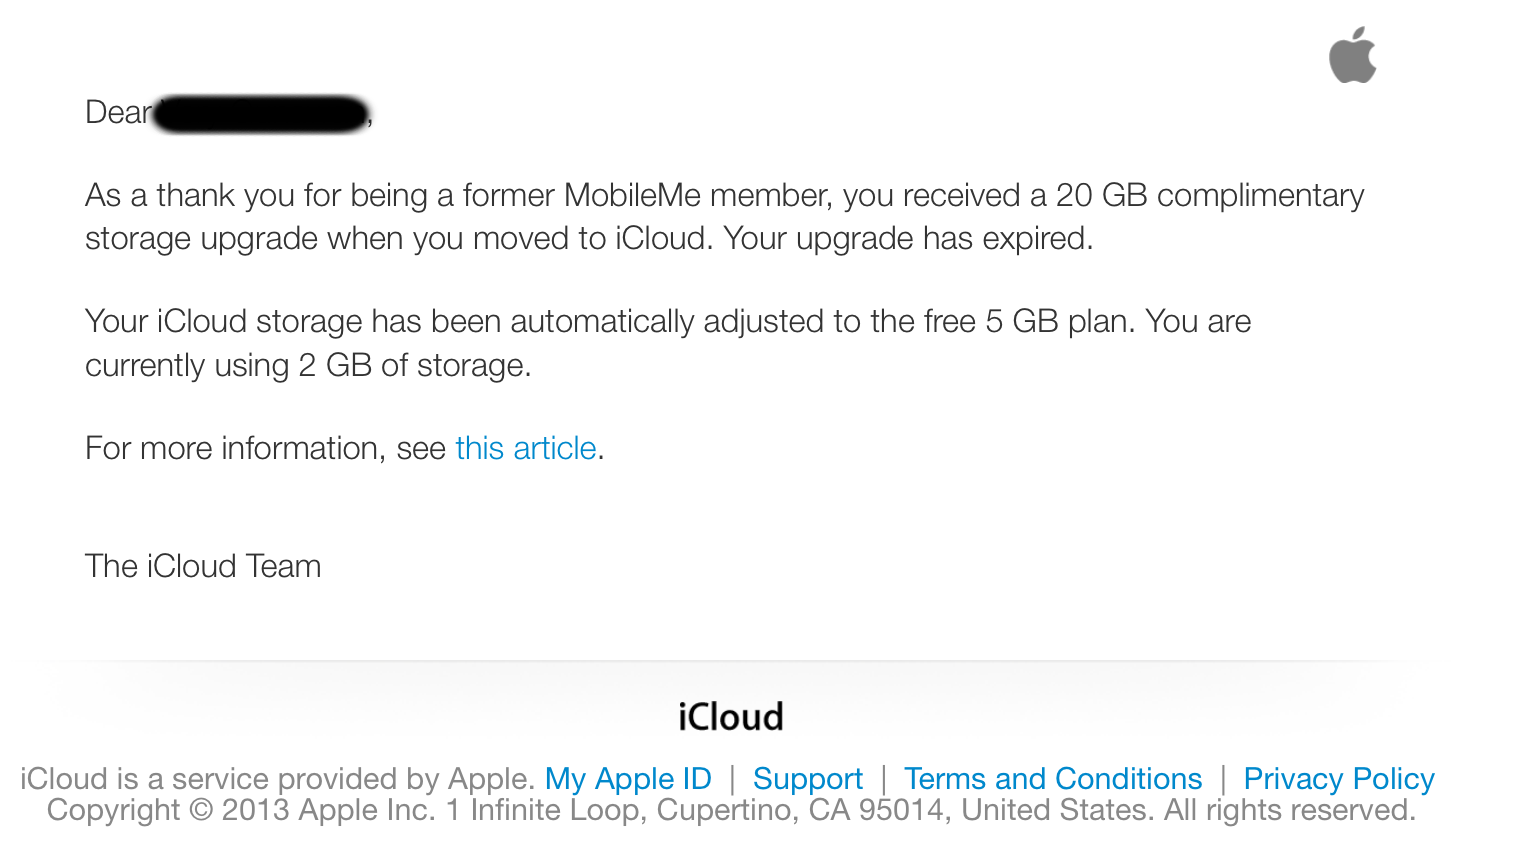 MobileMe Complimentary Storage has ended